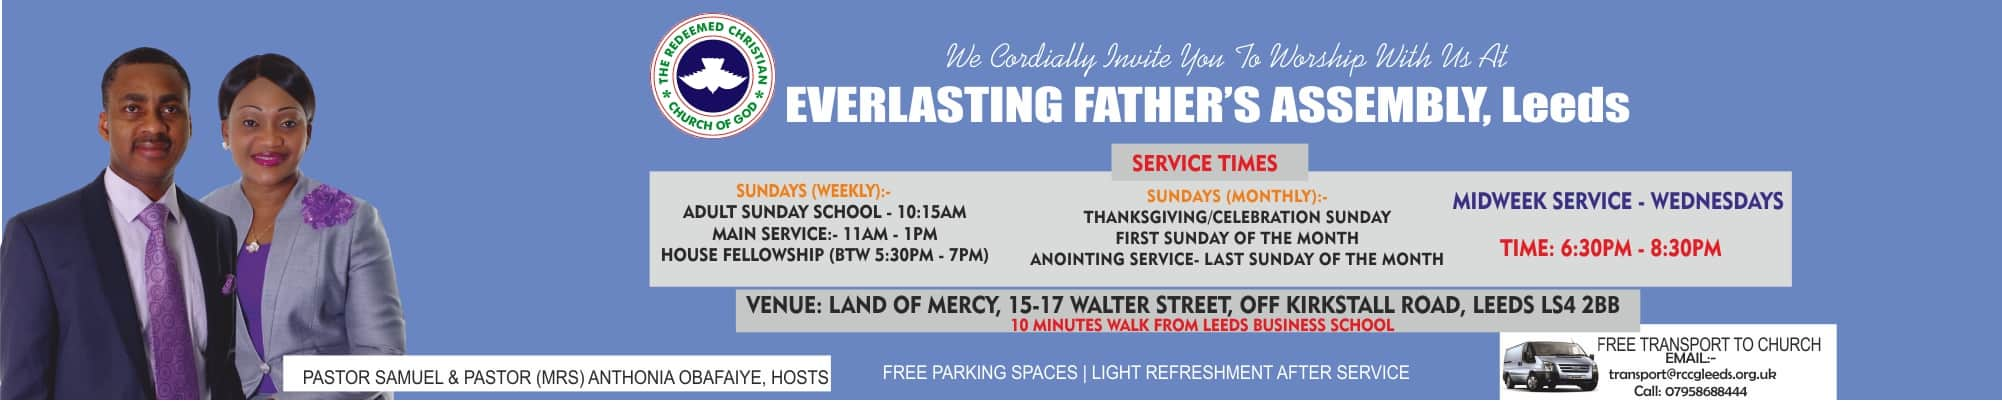 About RCCG Everlasting Father's Assembly, Leeds